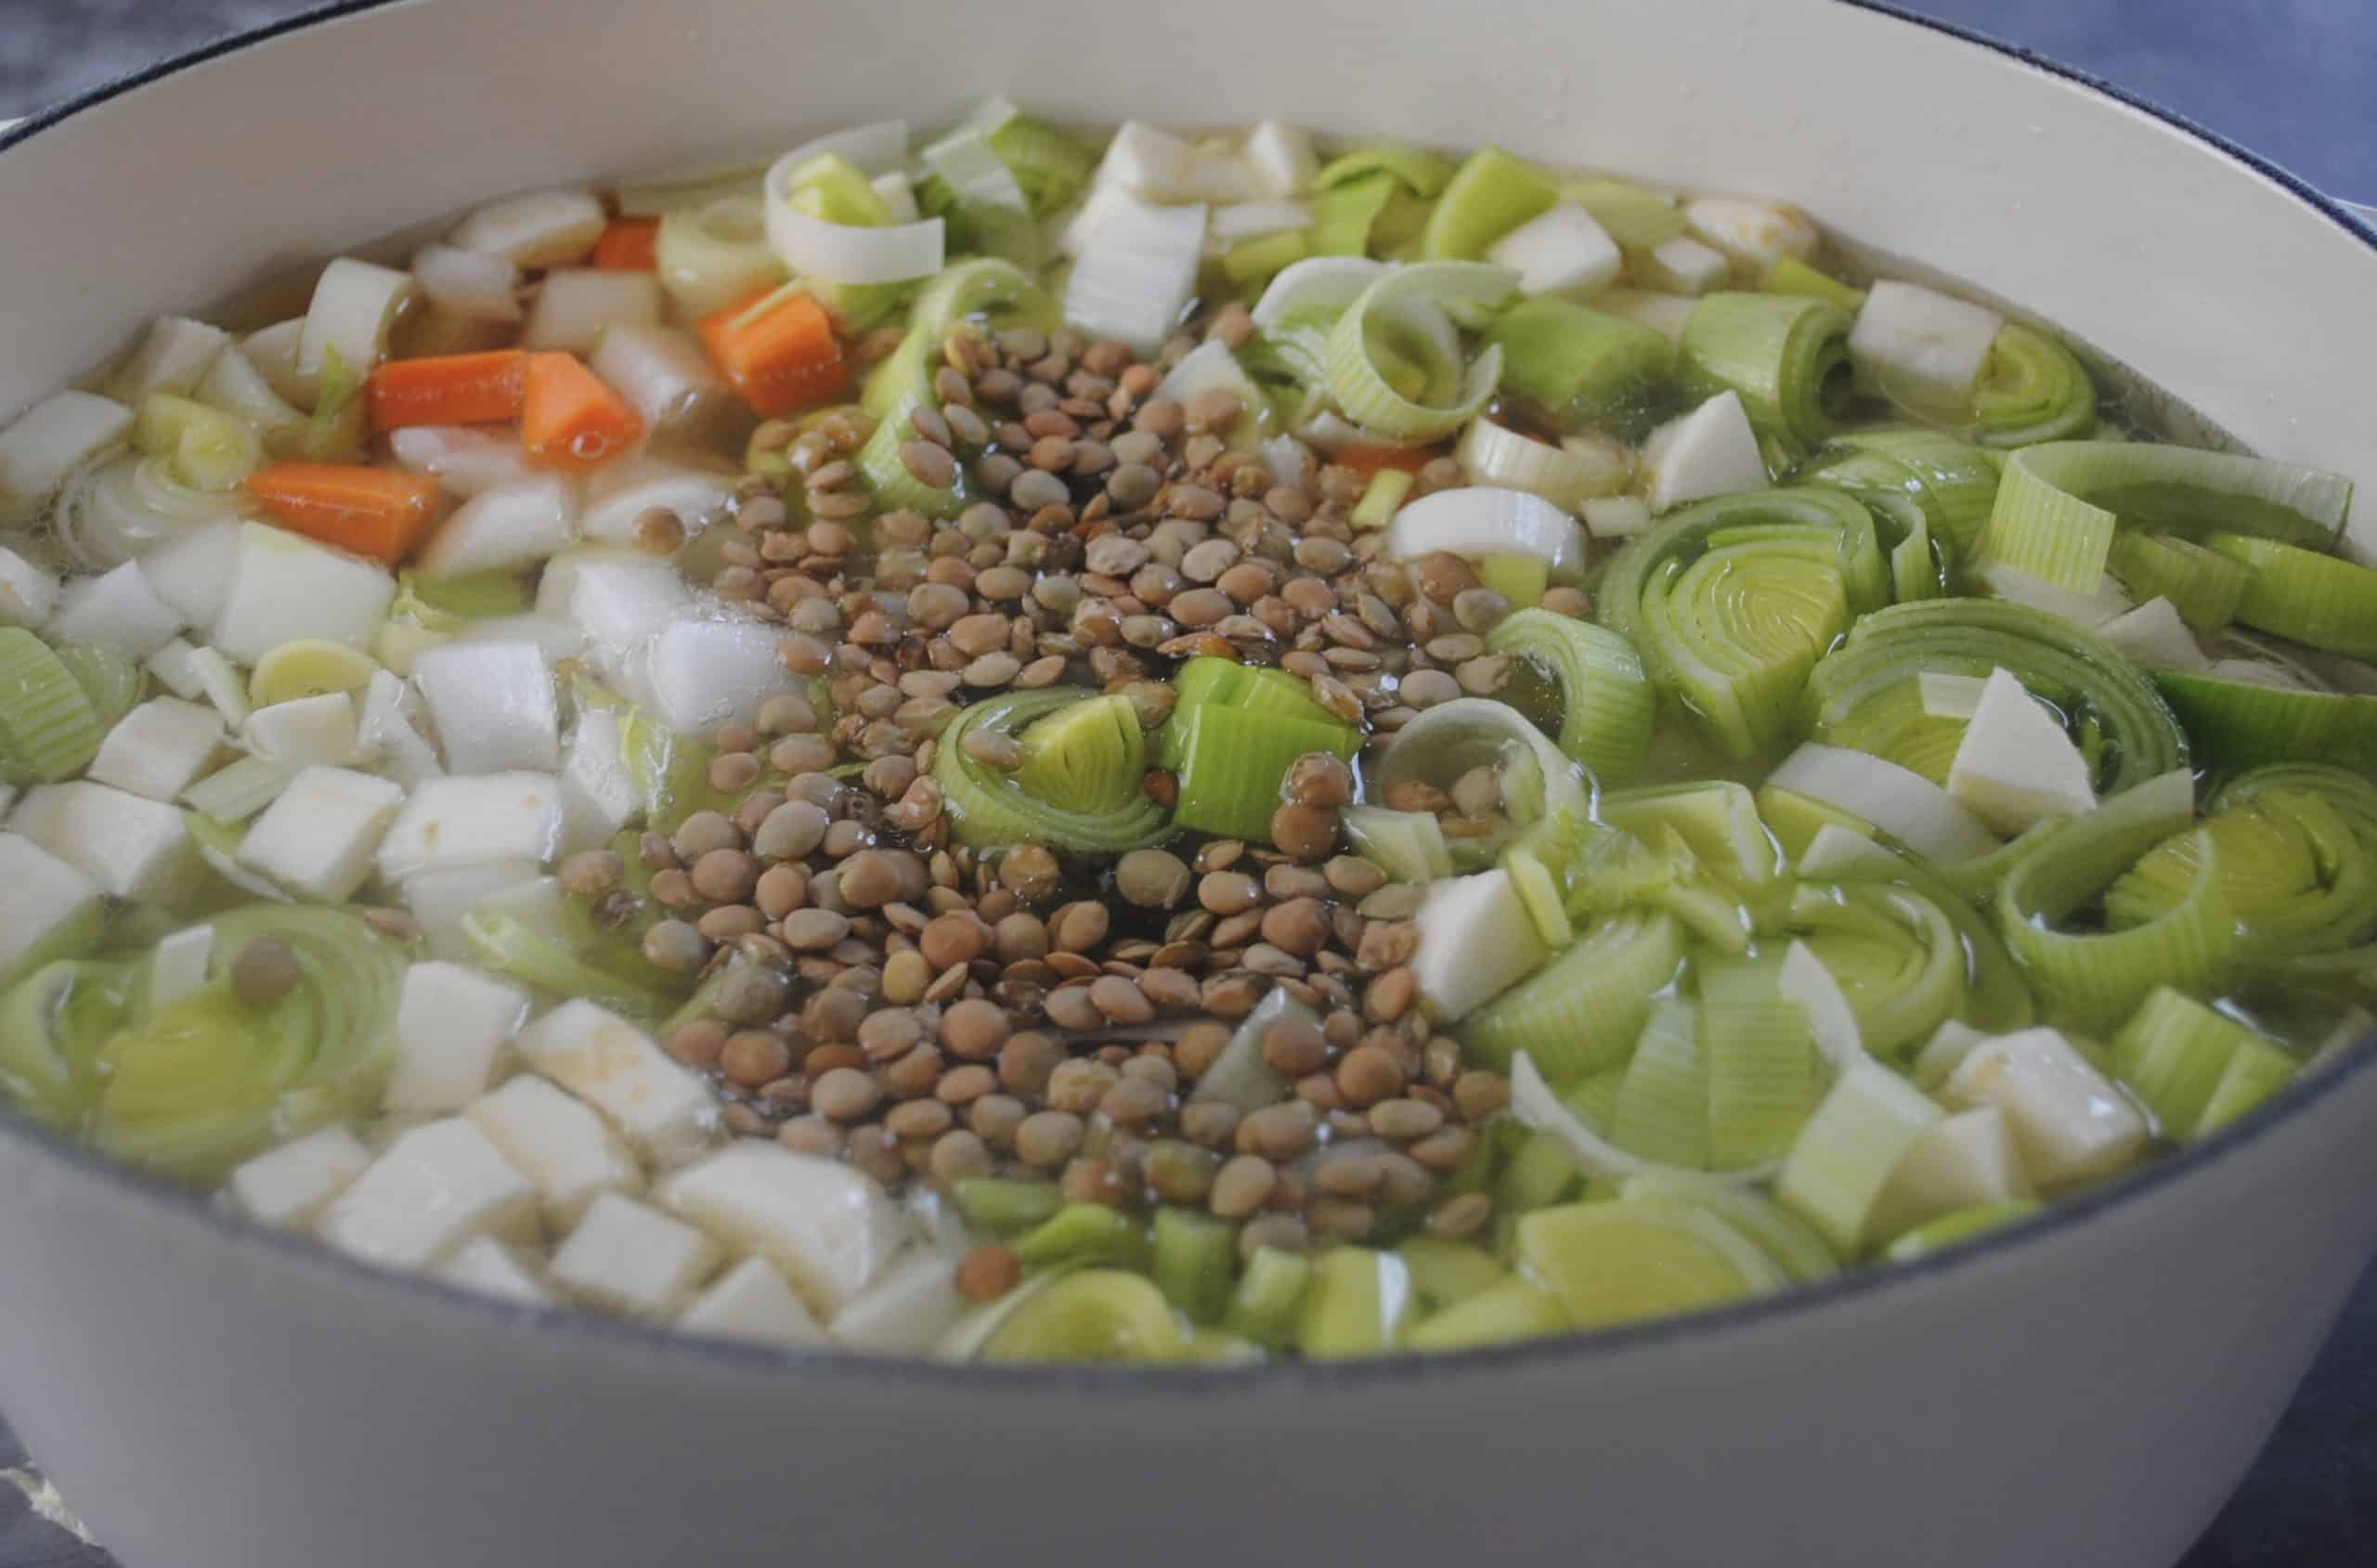 Add chopped onion, carrot, celery, parsnip, leek, barley and lentils to strained stock for hearty chicken vegetable and lentil soup